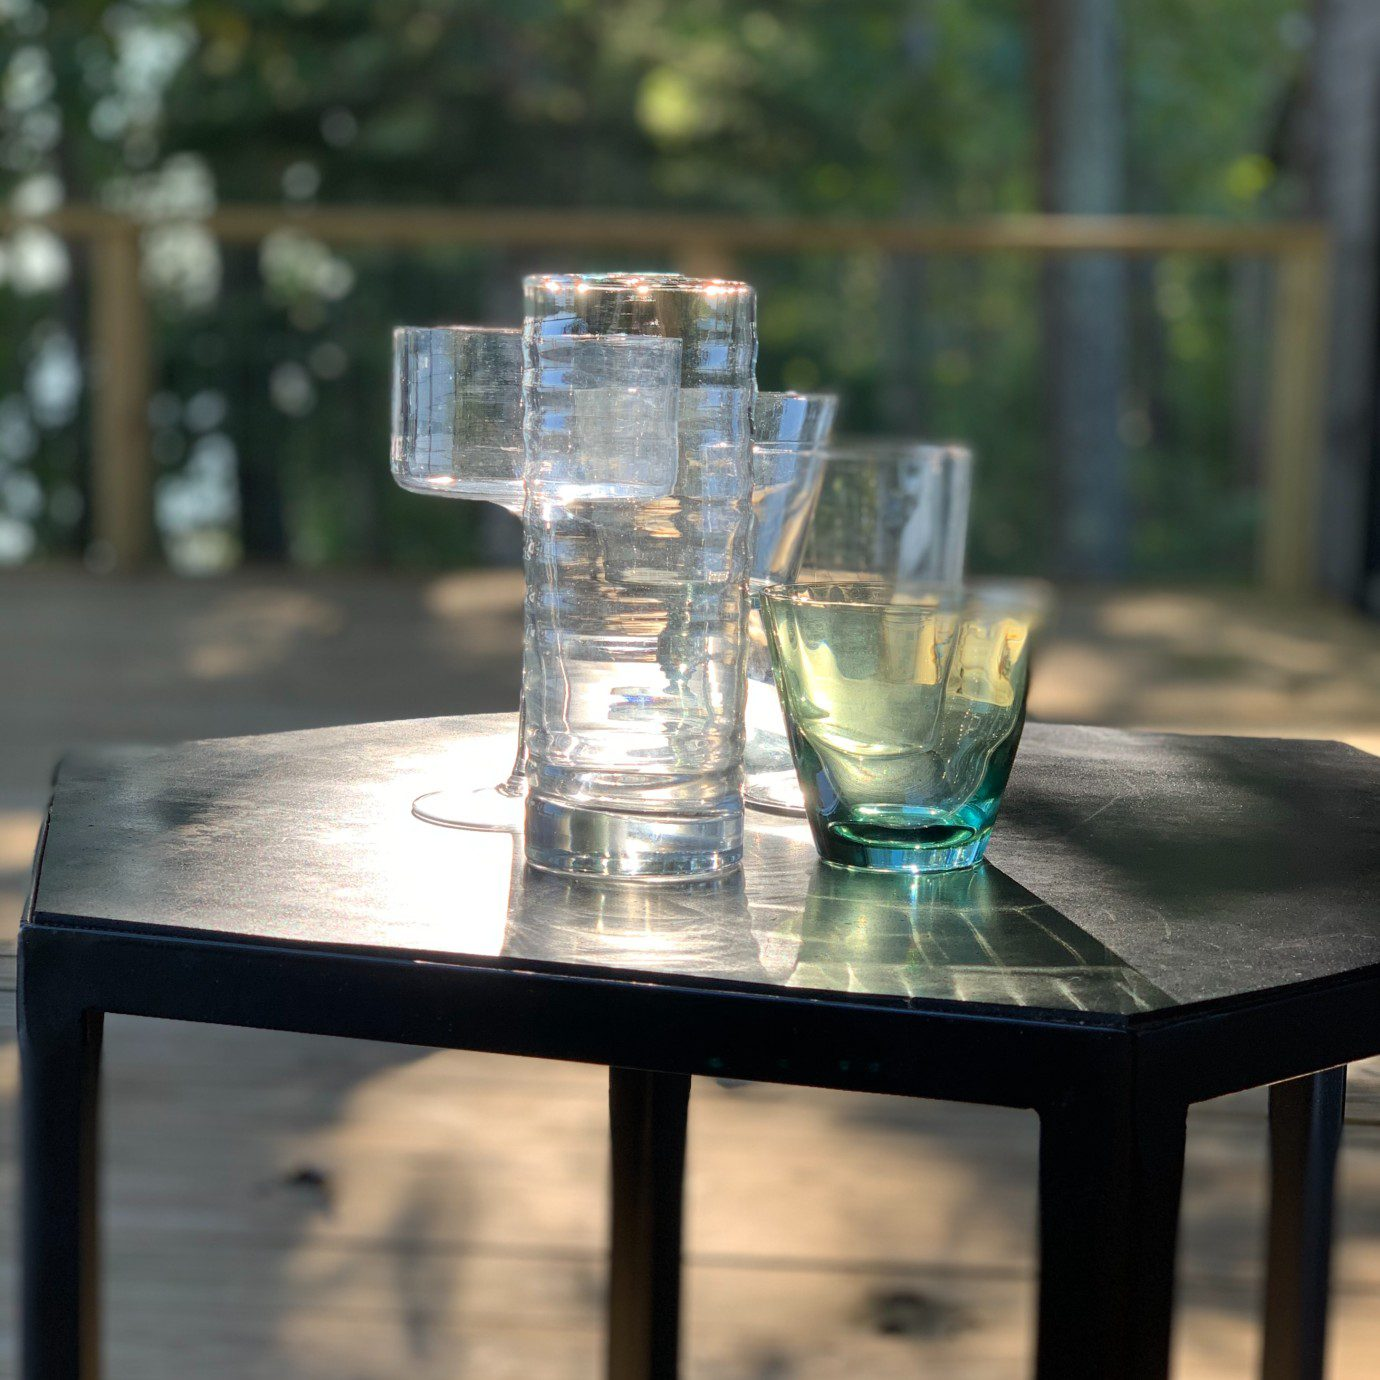 Alton Brown's cocktail glasses displayed outdoors on a black end table.